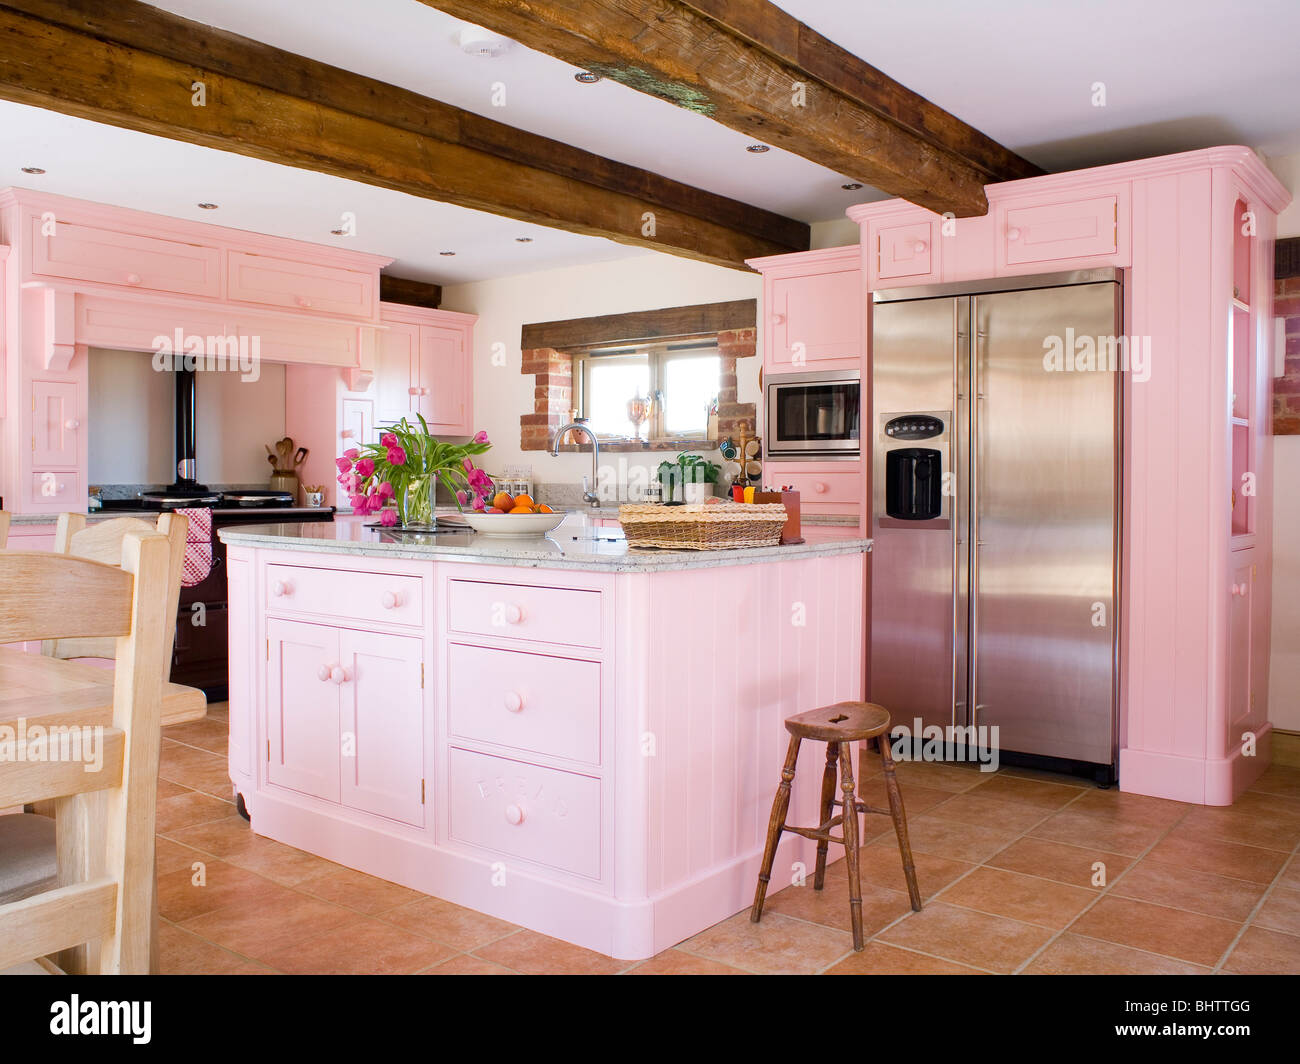 Pastel Pink Fitted Units And Island Unit In Country